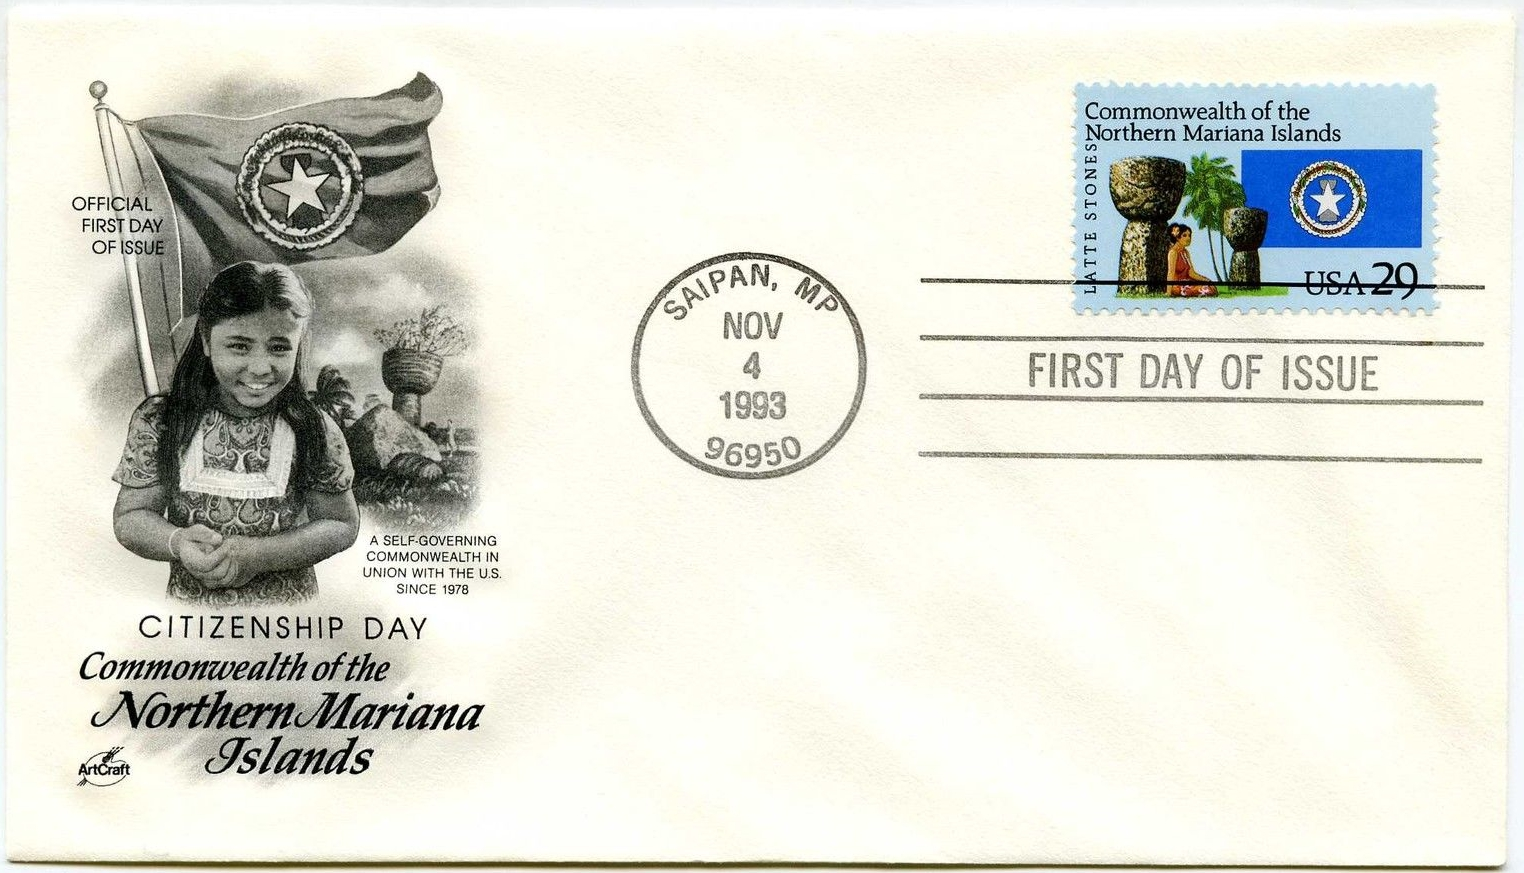 United States - Scott #2804 (1993) first day cover; ArtCraft cachet